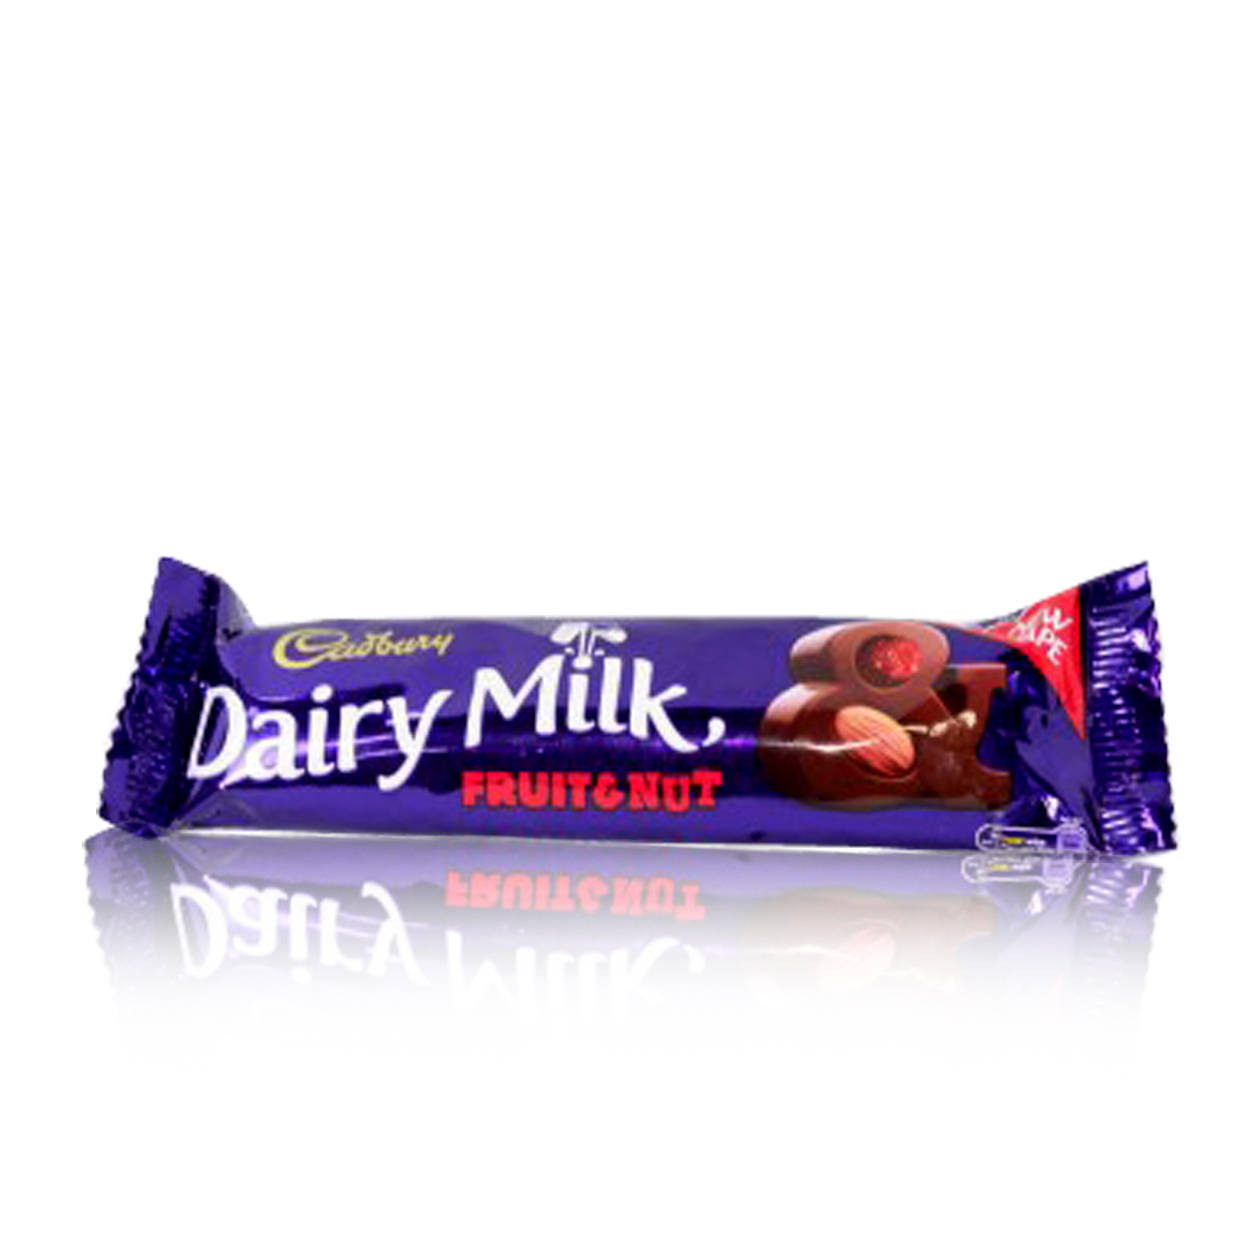 Cadbury Dairy Milk Fruit & Nut Chocolate 47gm